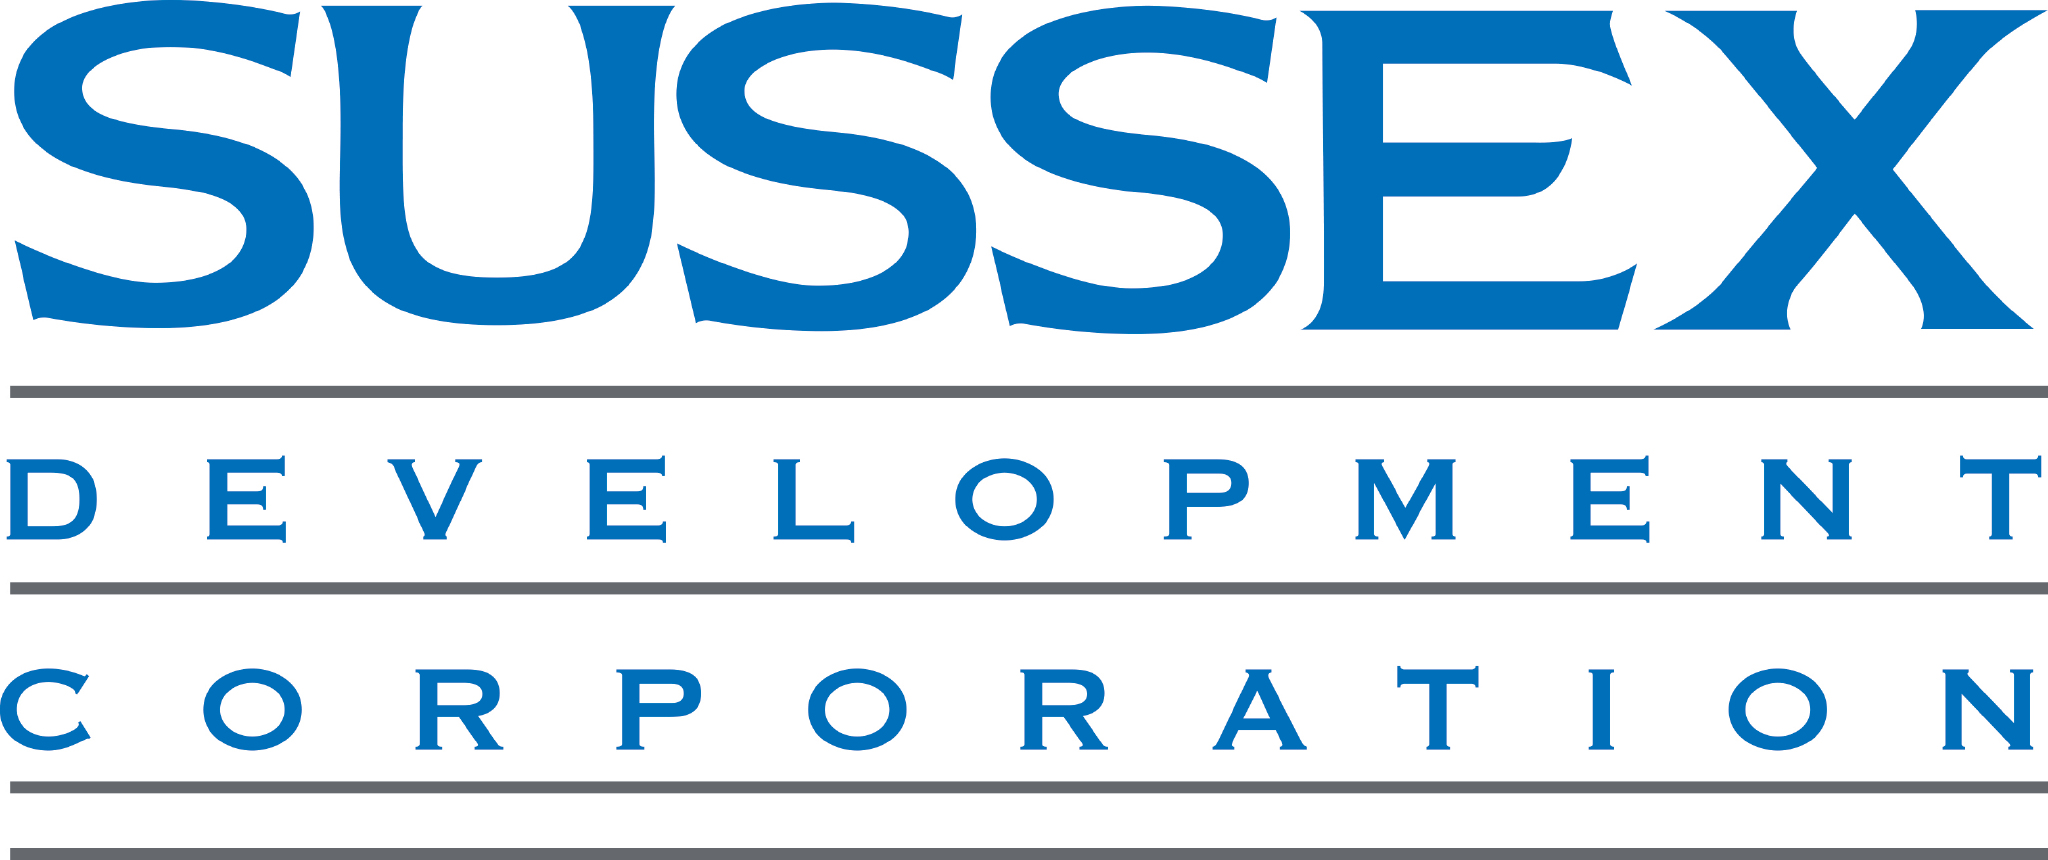 2016 Sussex Logo (CMYK)